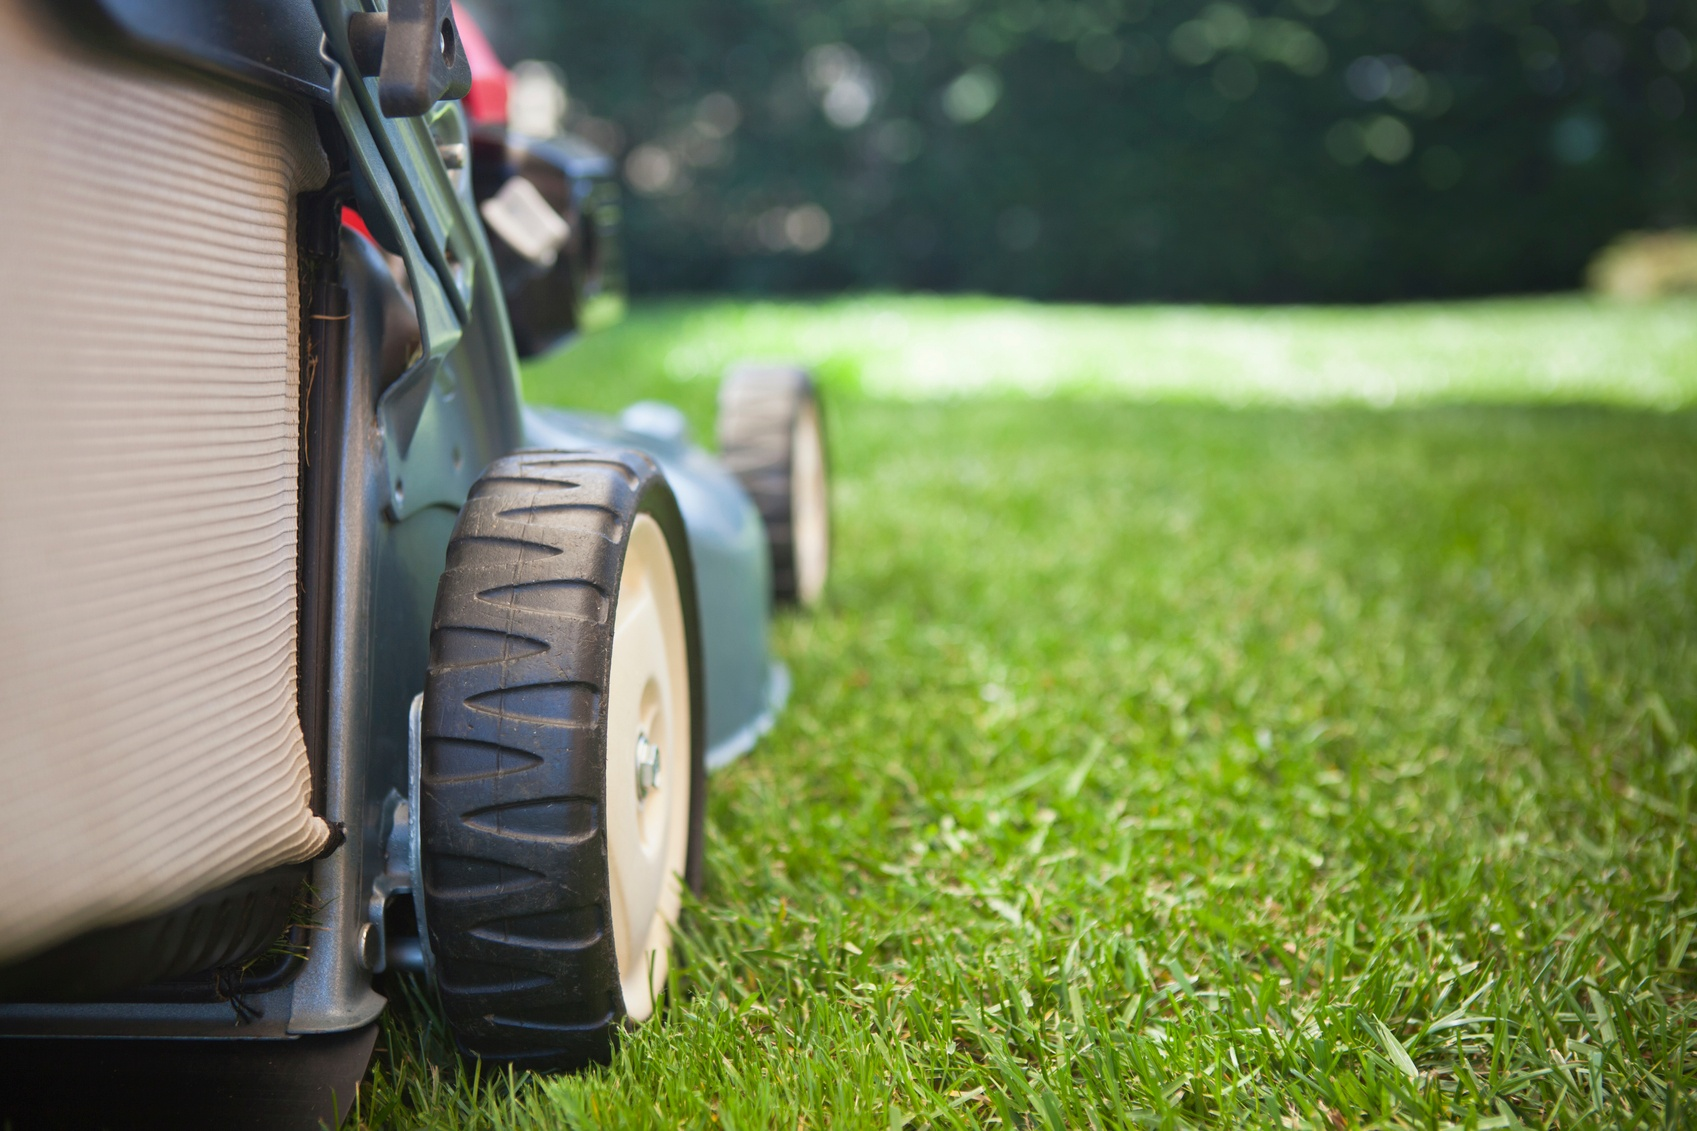 Dull mower blades rip and tear the blades of grass making the plant weak and susceptible to disease and other stresses.